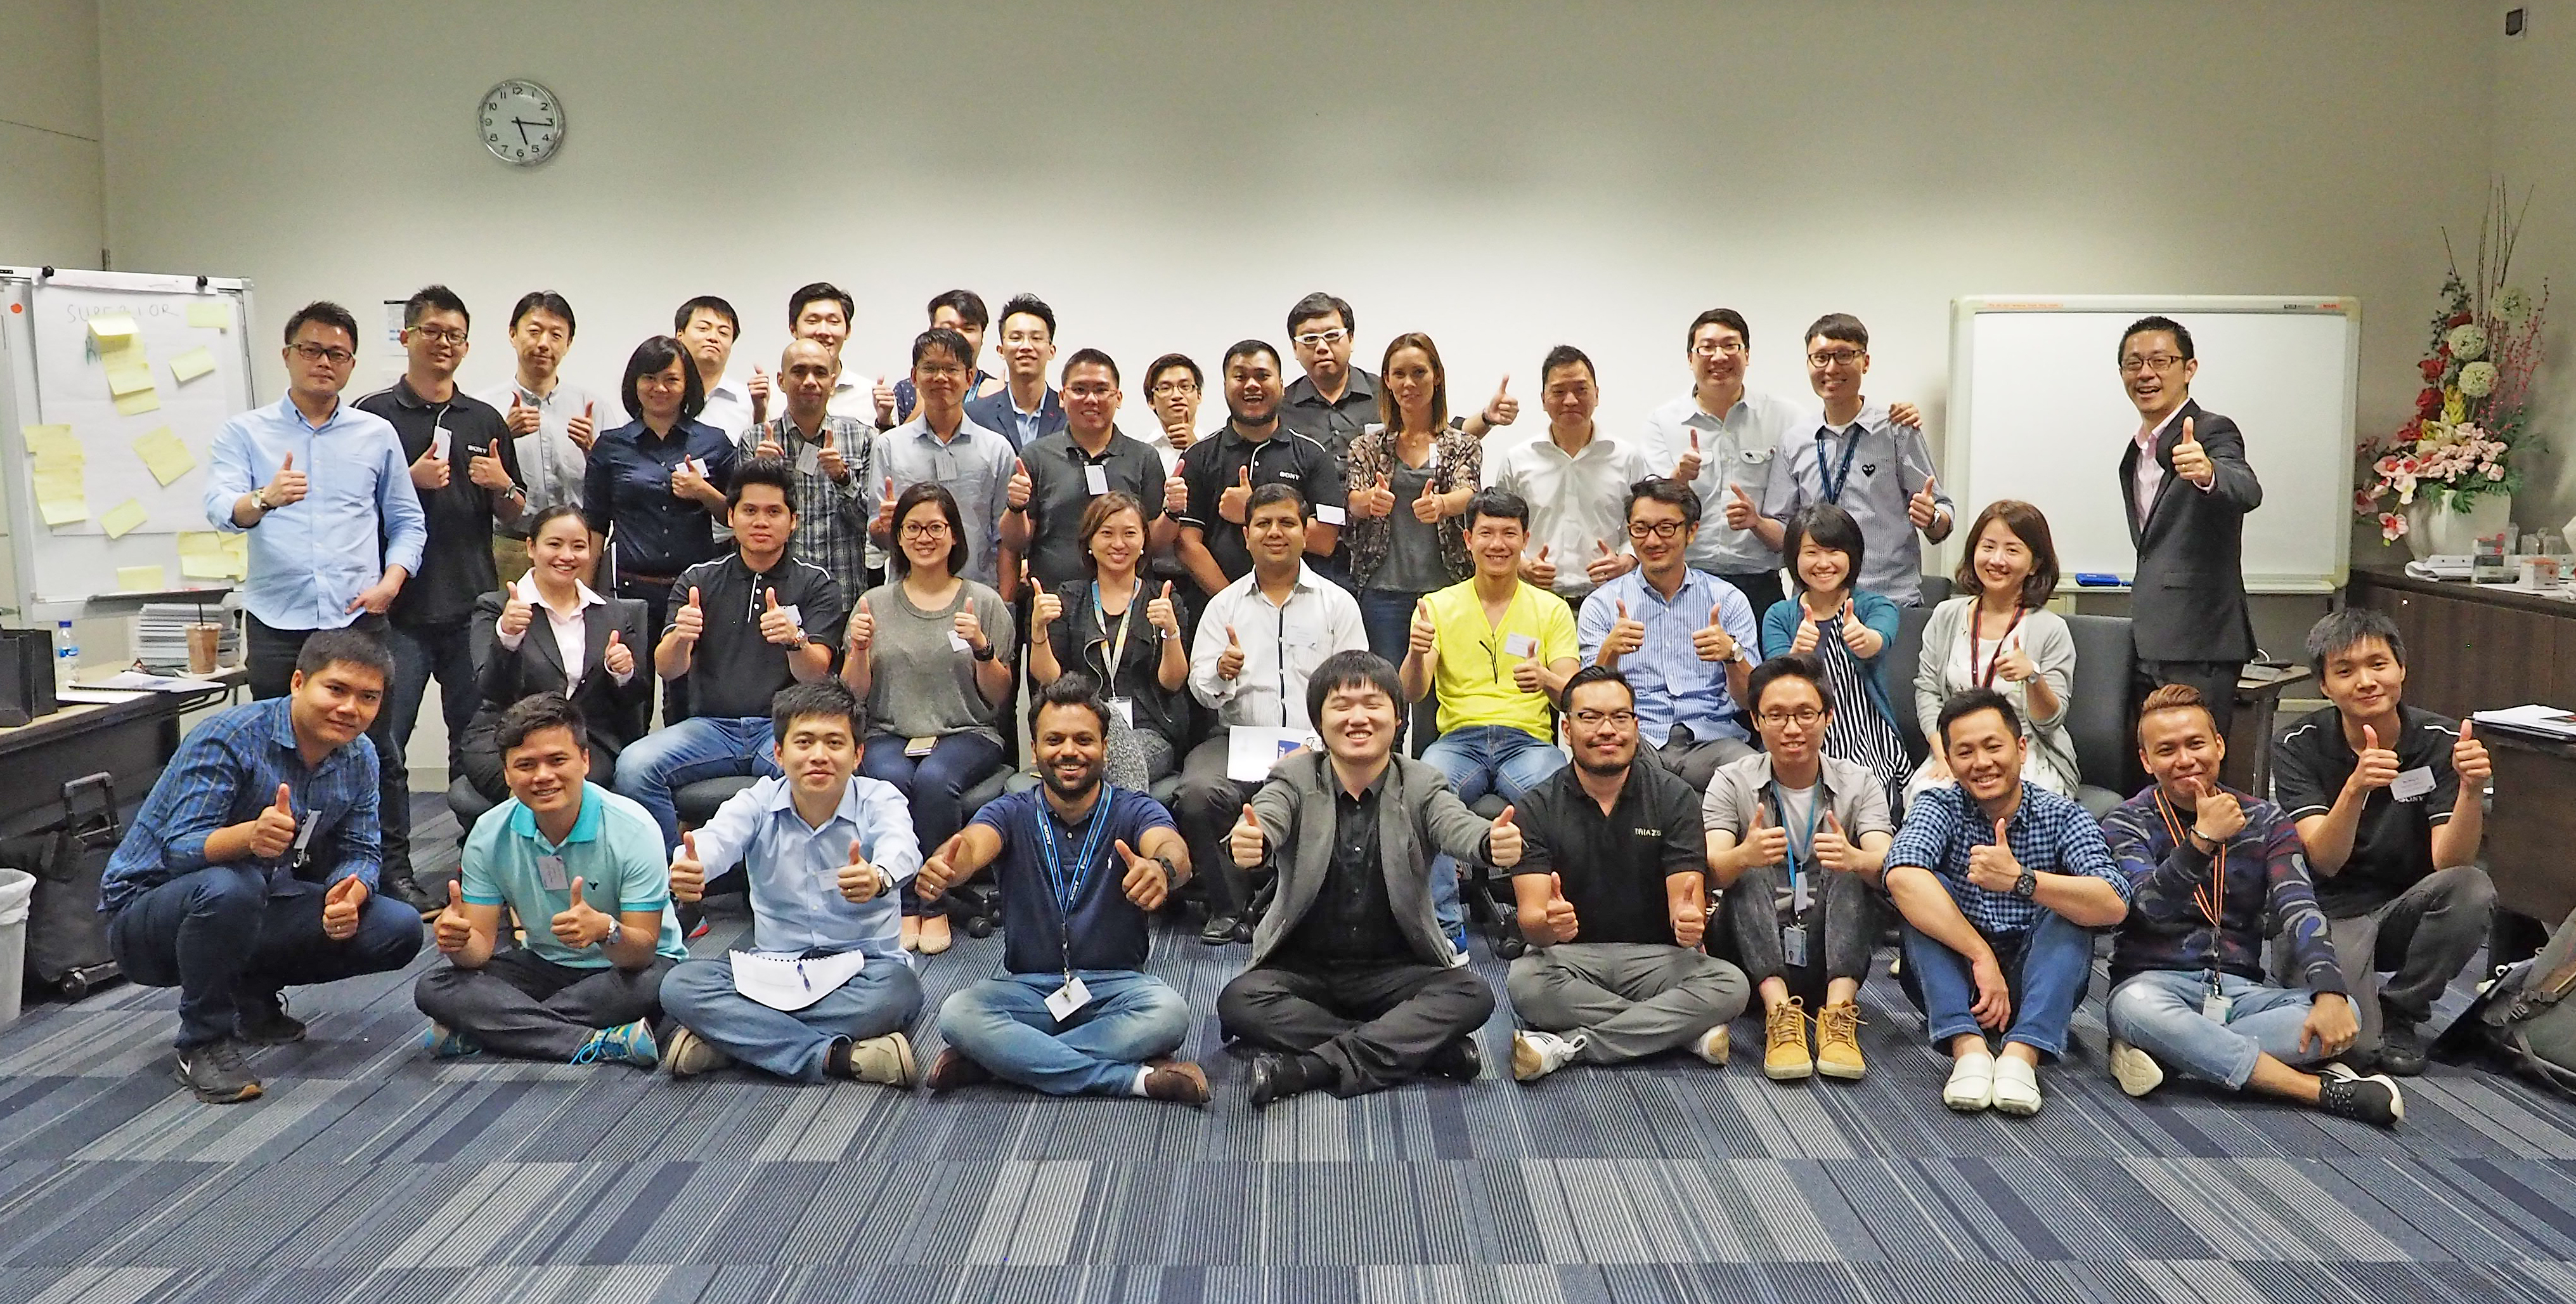 Sony Mobile Group Photo